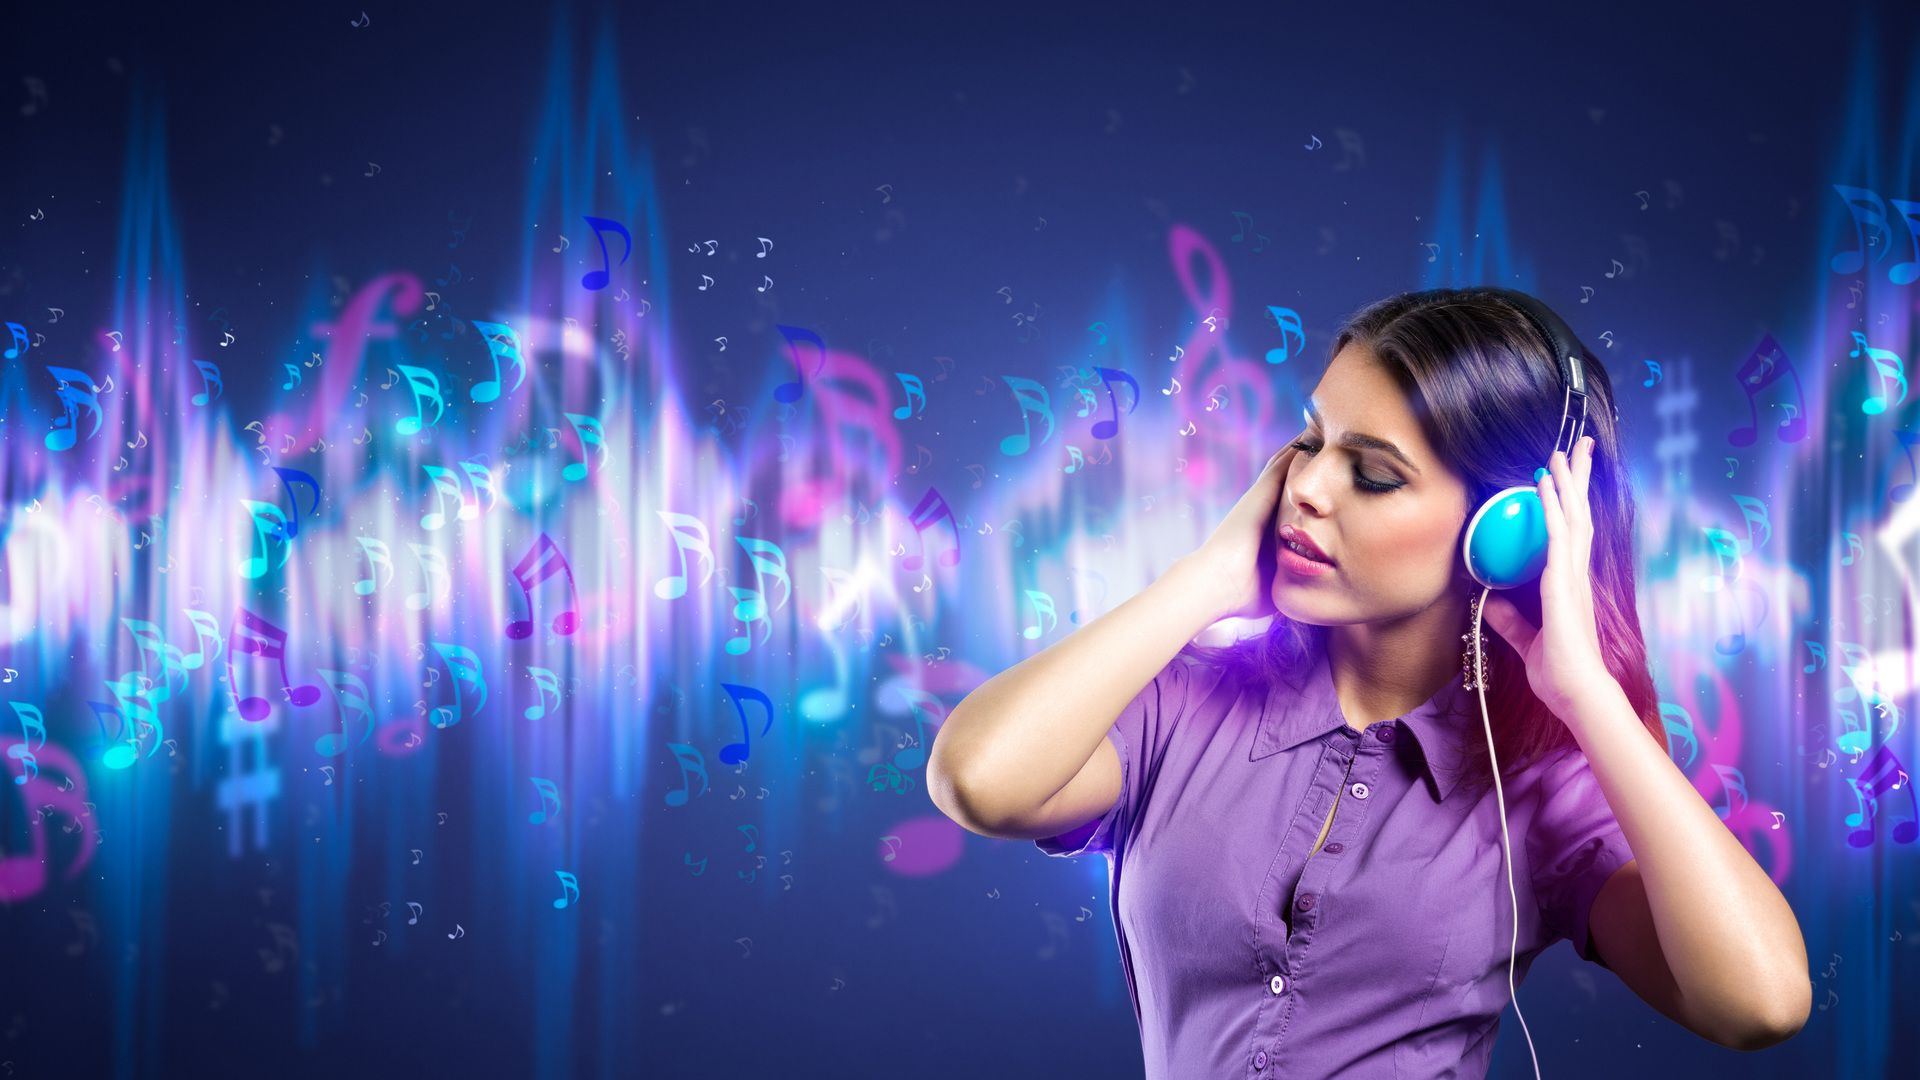 Music free picture